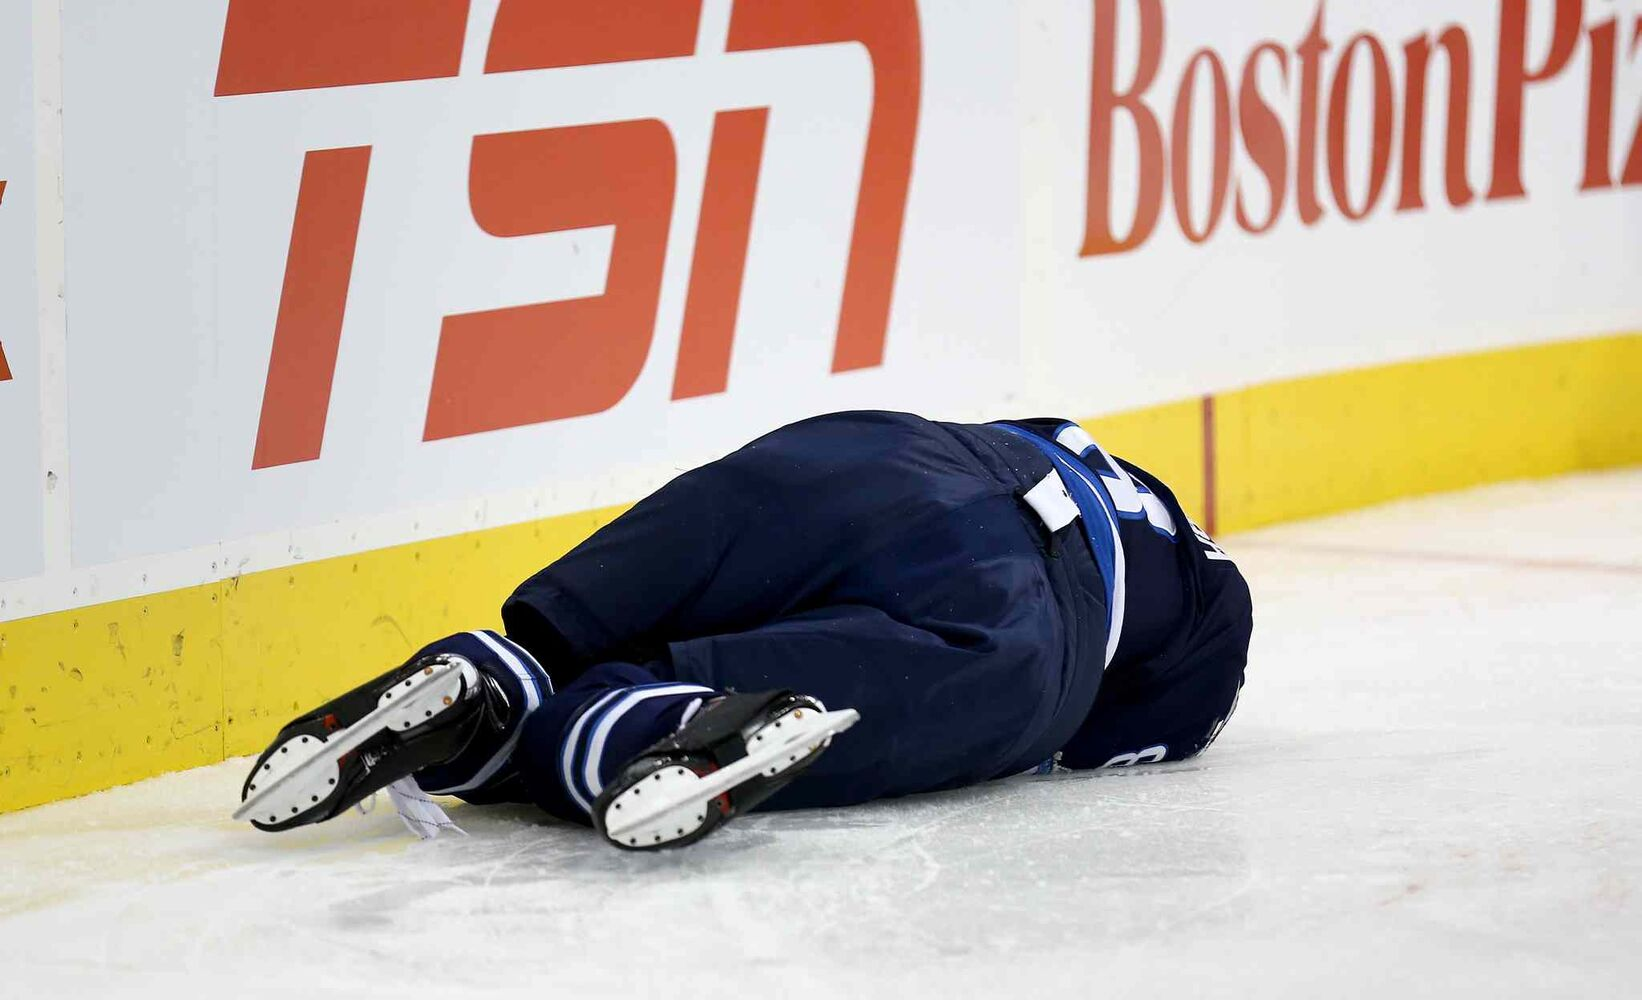 Winnipeg Jets' Jacob Trouba lays on the ice after hitting the boards head-first. (TREVOR HAGAN / WINNIPEG FREE PRESS)